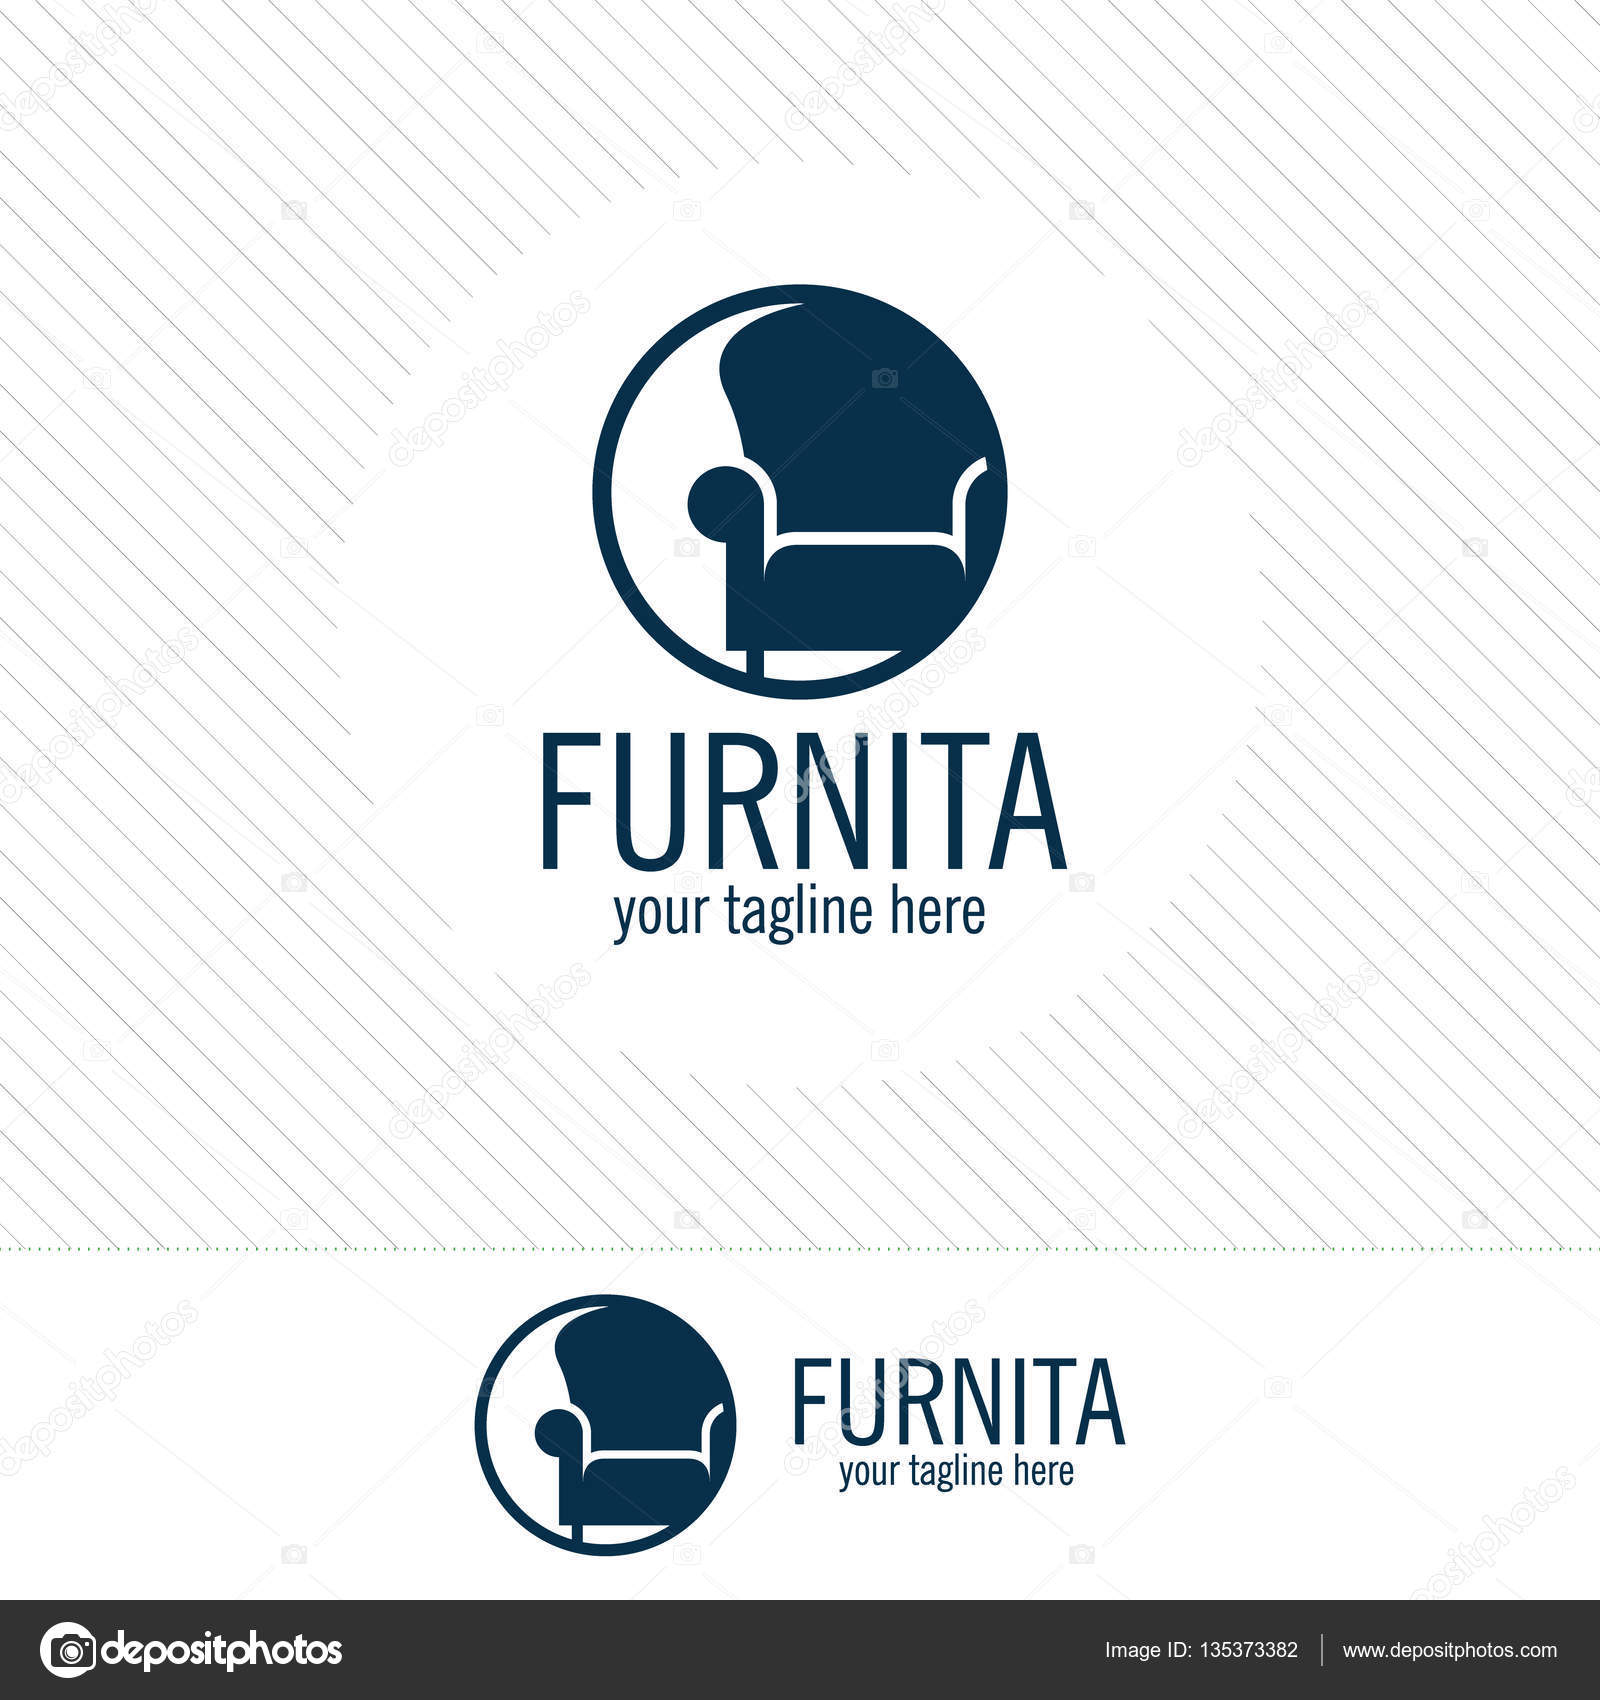 Abstract furniture logo design concept Symbol and icon of chairs